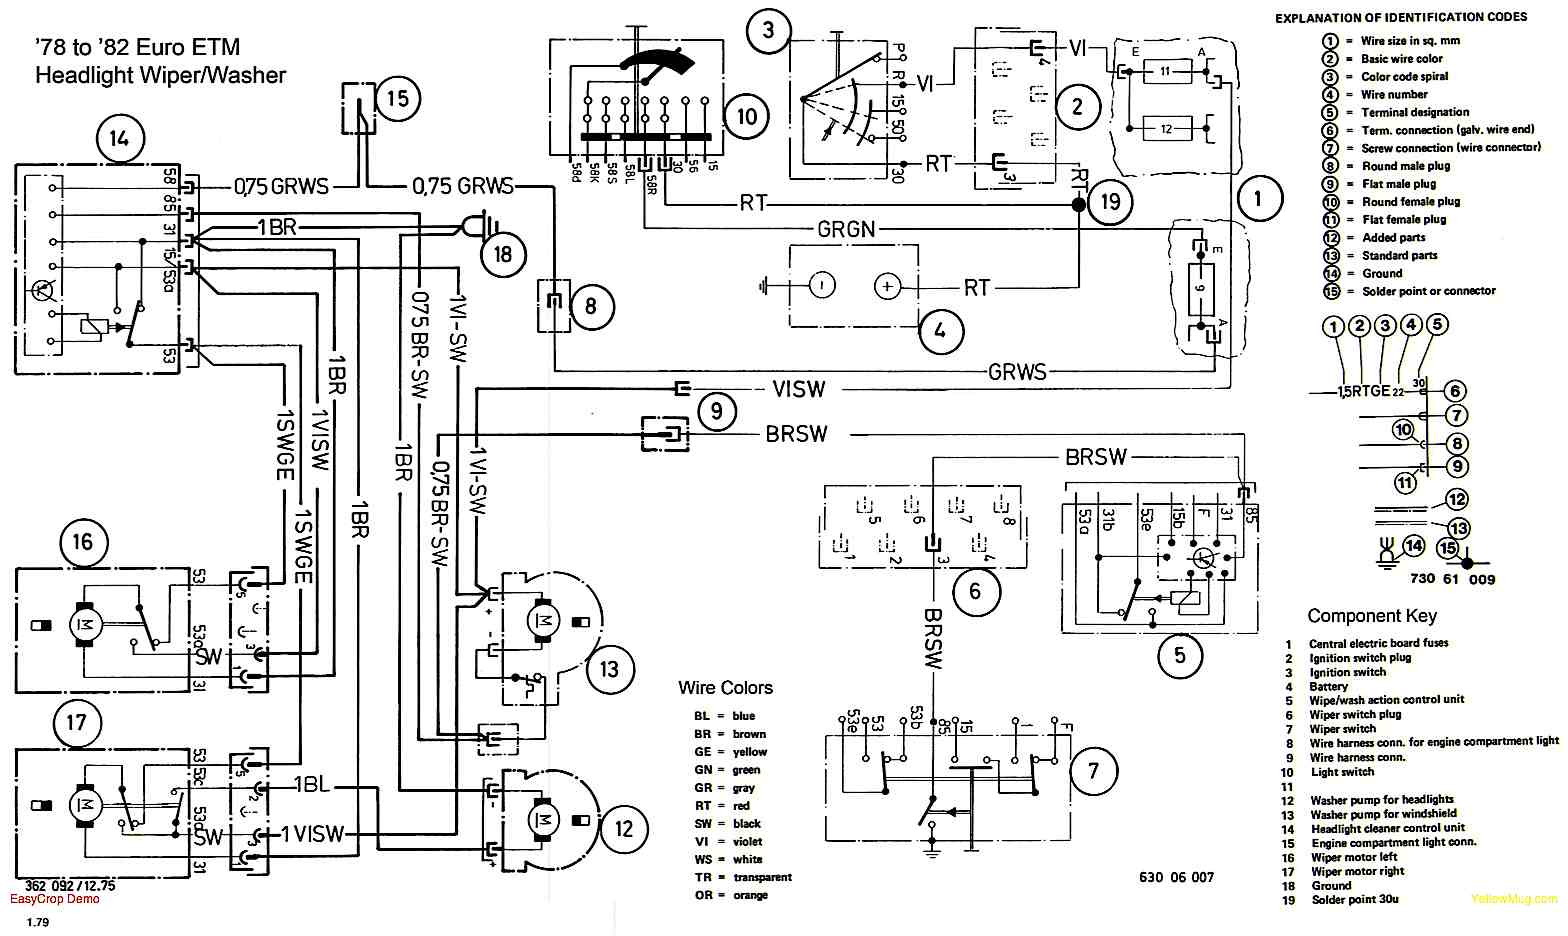 headlight_cleaners_composit_719 e28 euro headlamp washer system \u2022 mye28 com e28 wiring diagram at crackthecode.co